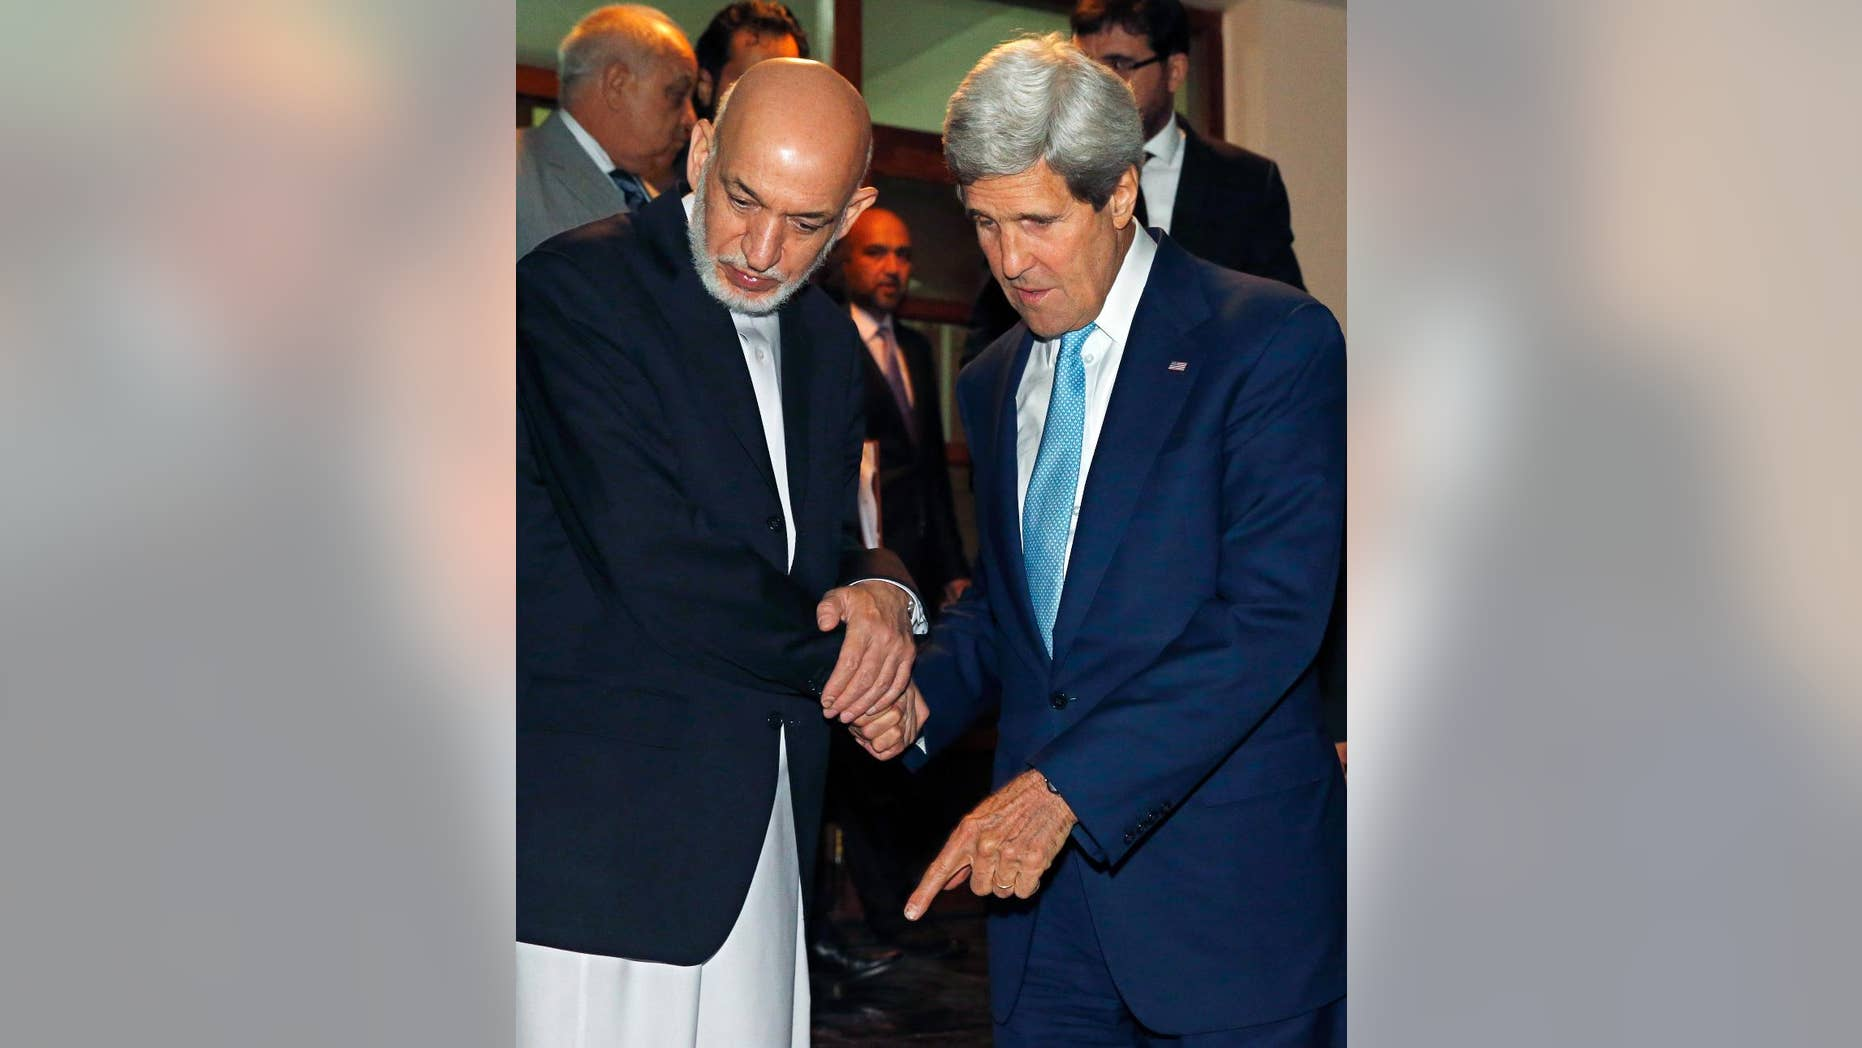 U.S. Secretary of State John Kerry, right, and Afghanistan's President Hamid Karzai talk as Karzai says goodbye to Kerry after a dinner at the presidential palace in Kabul, Afghanistan, Friday, July 11, 2014. Kerry visited Afghanistan in hopes of diffusing a crisis over the runoff presidential election to find a successor for outgoing President Karzai. (AP Photo/Jim Bourg, Pool)